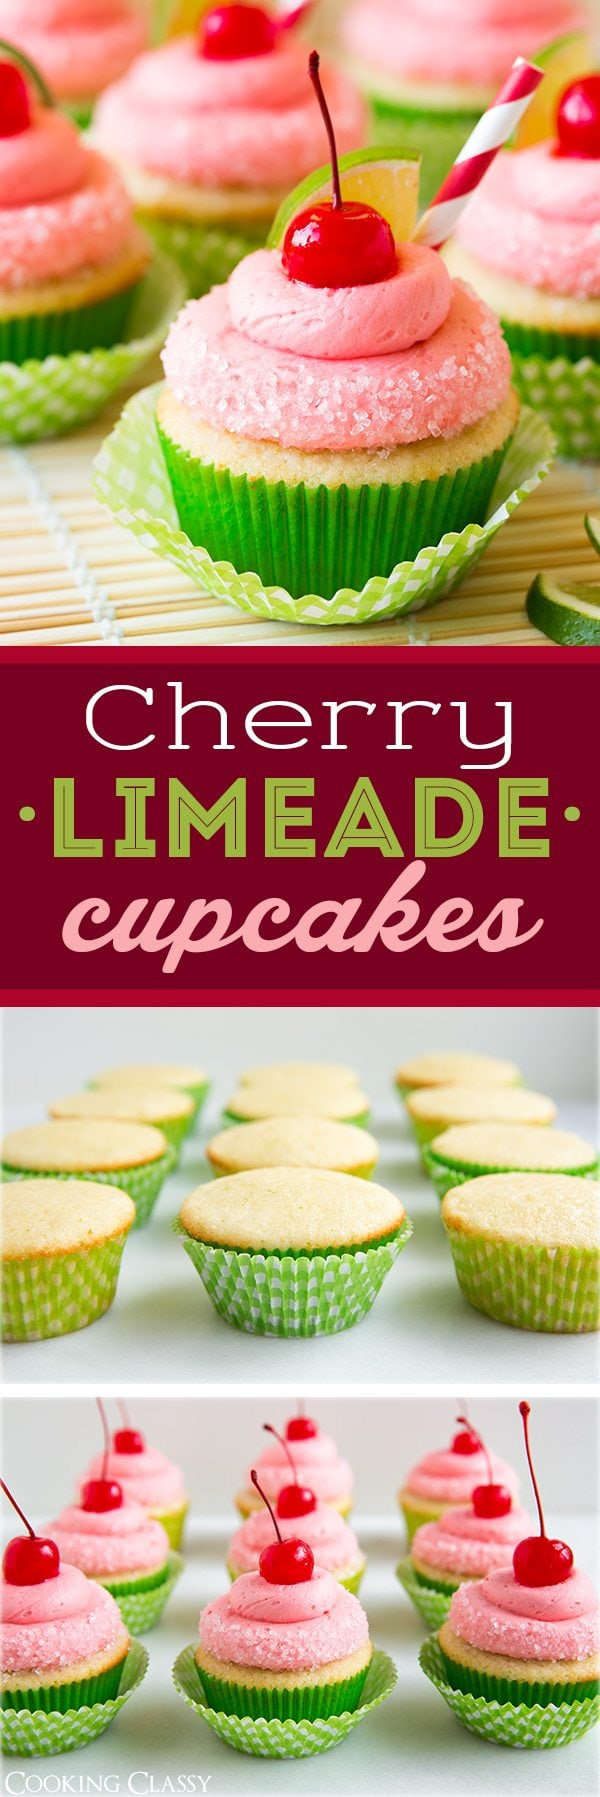 Cherry Limeade Cupcakes | Cooking Classy